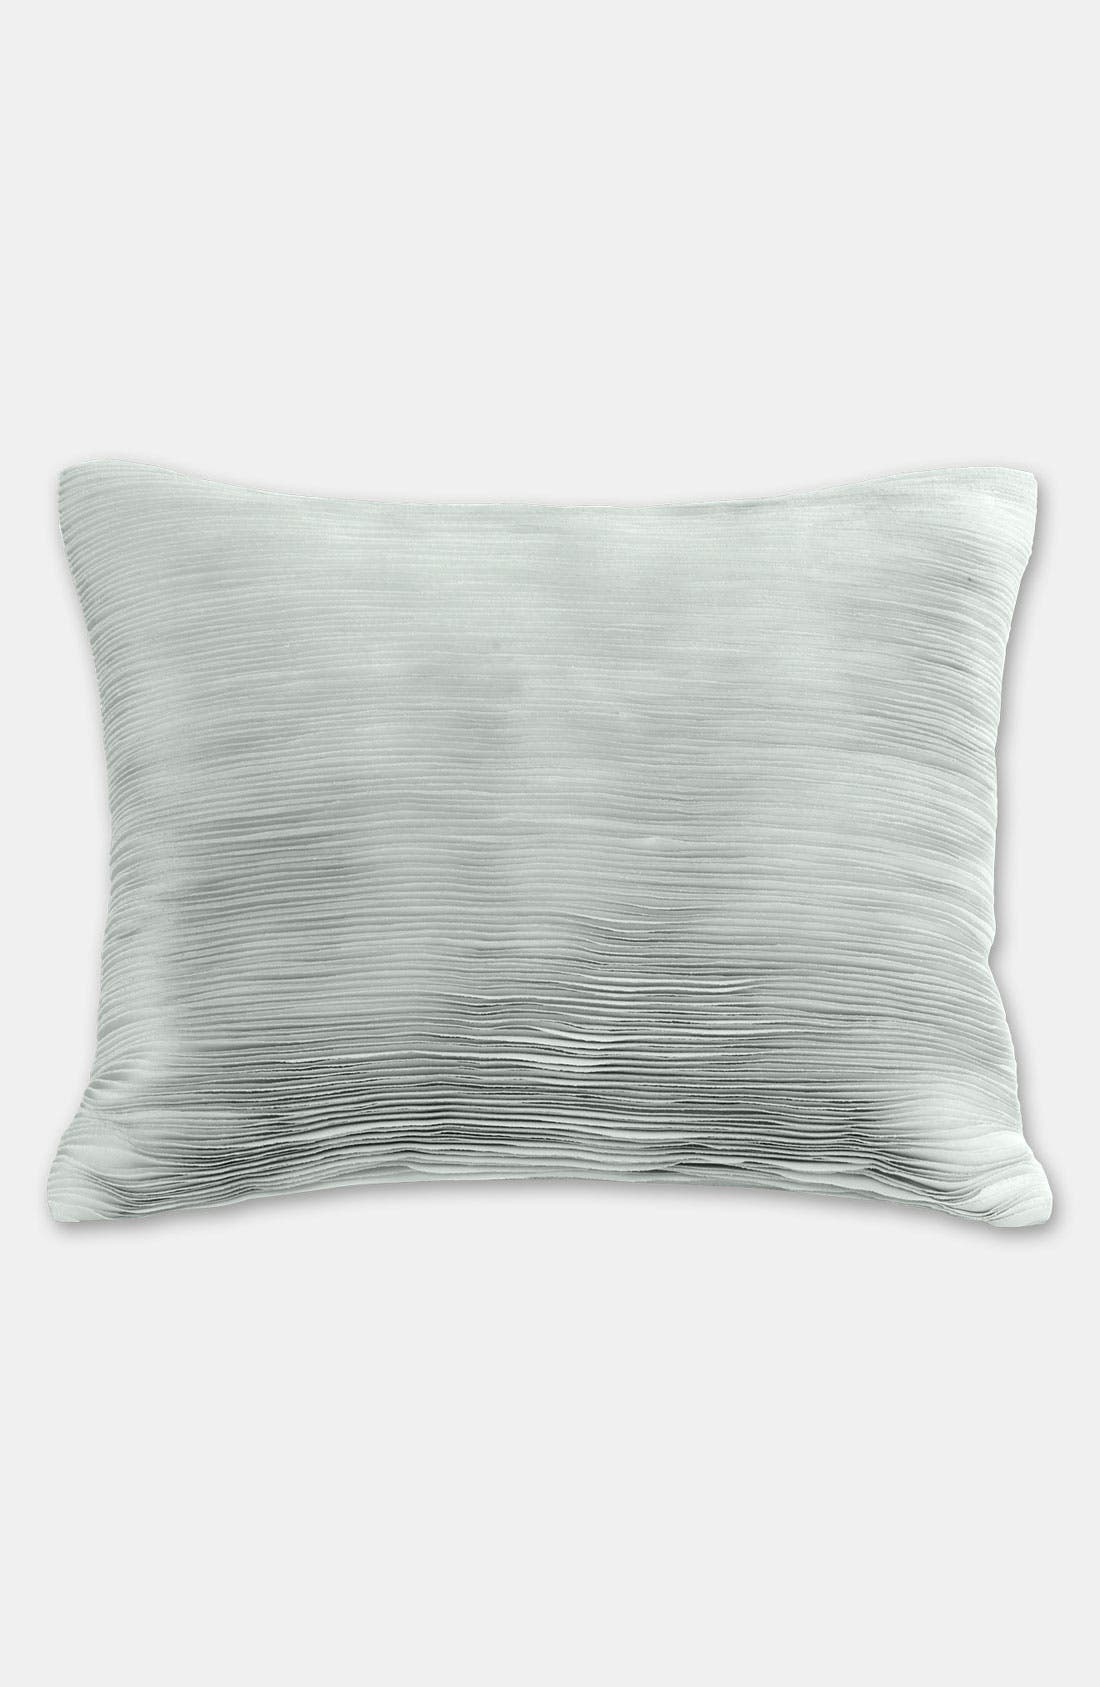 Alternate Image 1 Selected - Donna Karan 'Layered' Sateen Pillow